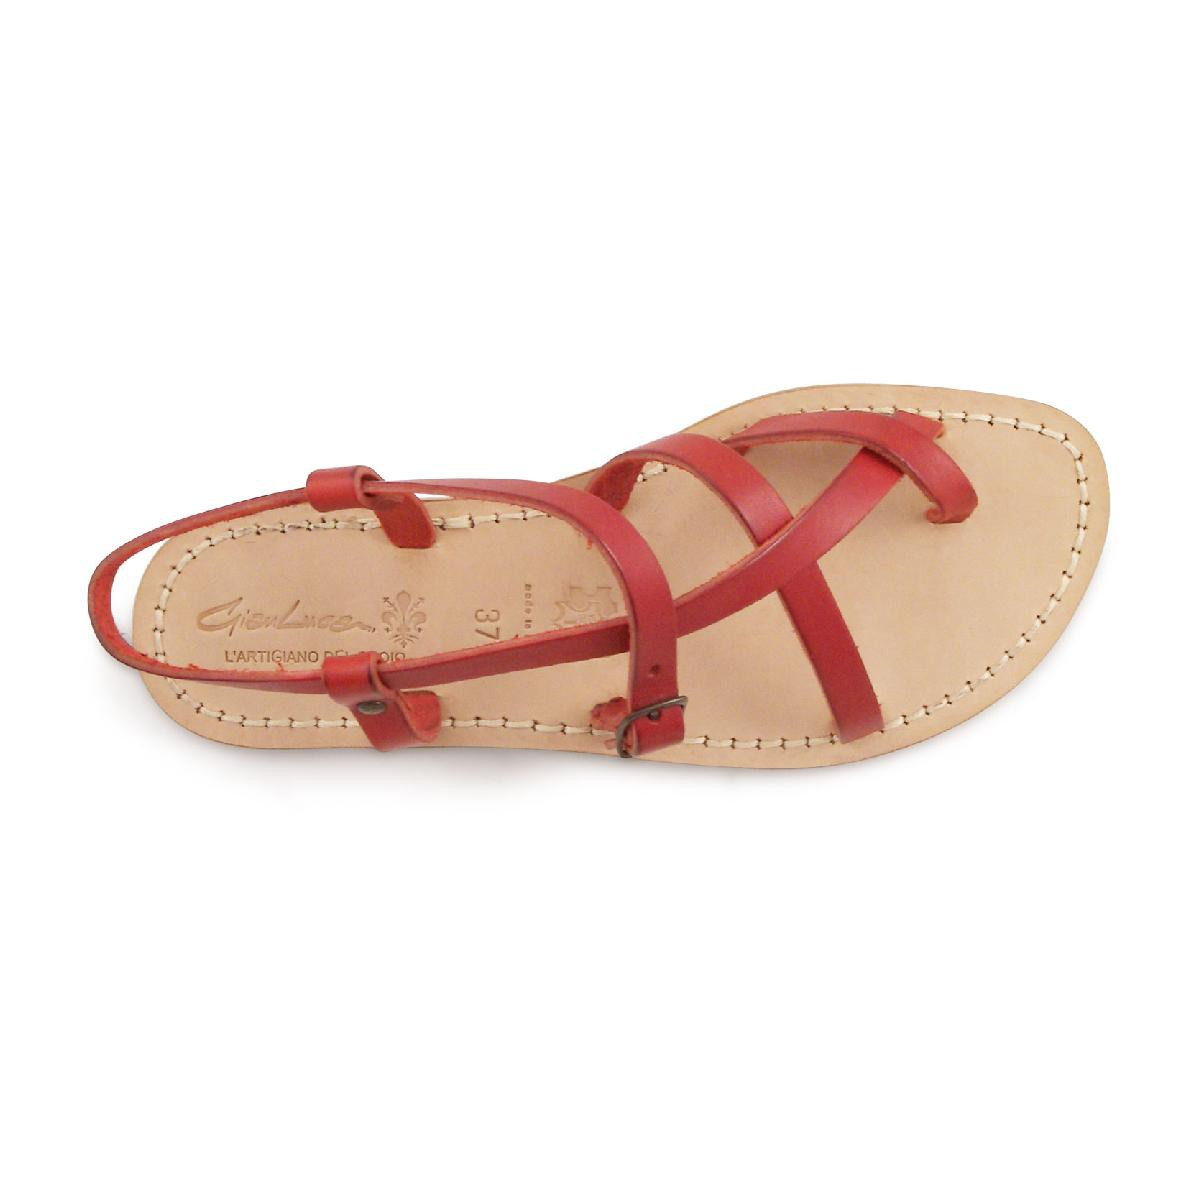 1811 Red Leather Flat Sandals For Women Handmade In Italy in addition Craftsman Garage Craftsman Shed Other besides Modern Georgian Houses Design also 322d70c0d7686a98 further 1806 Brown Leather Thong Sandals For Women Handmade. on craftsman style colors